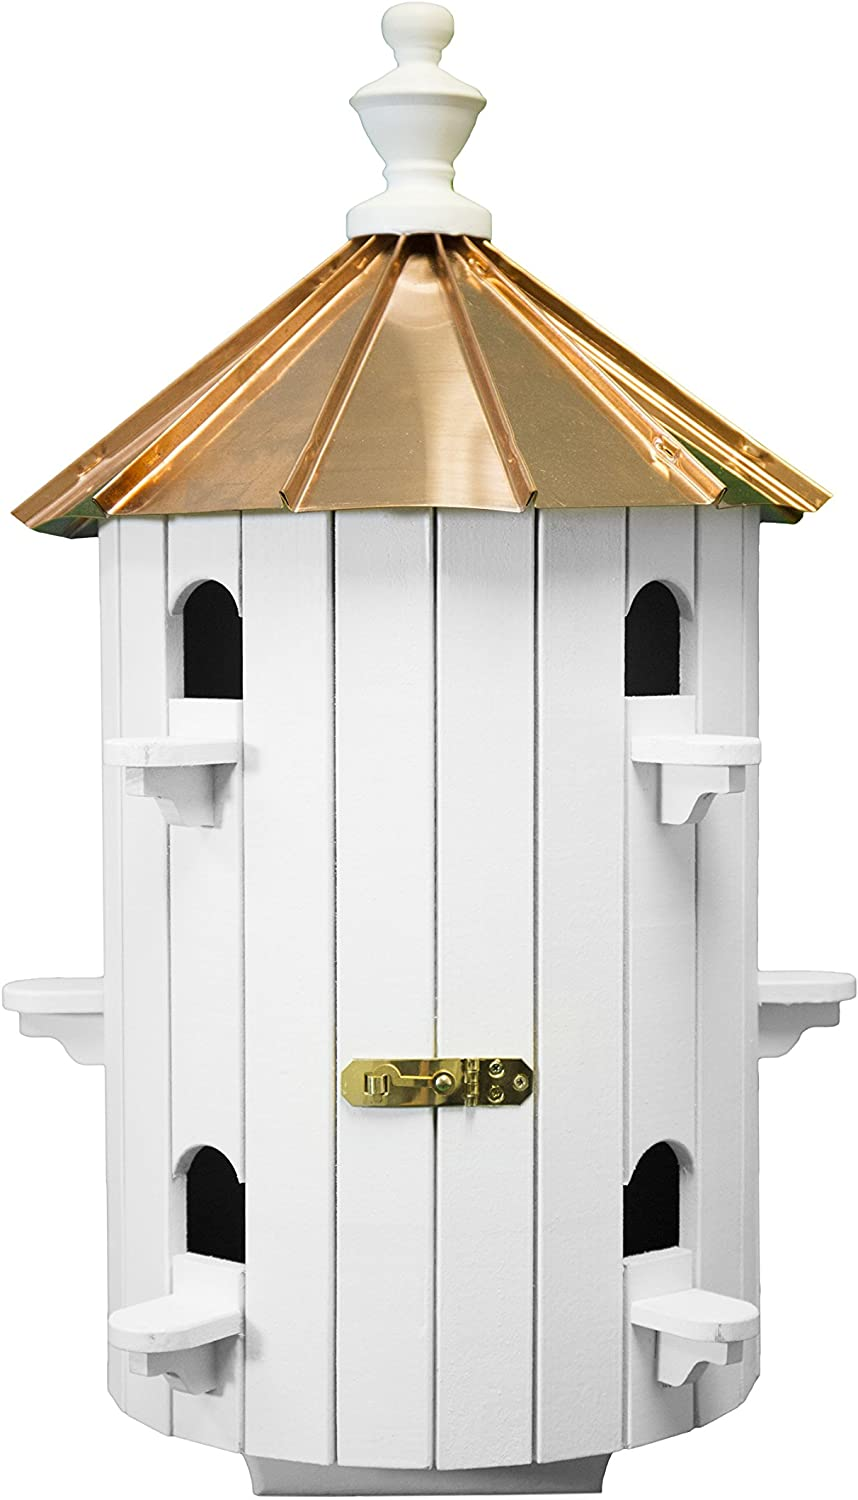 Dress The Yard 10-Hole Copper Roof Wooden Condo Birdhouse